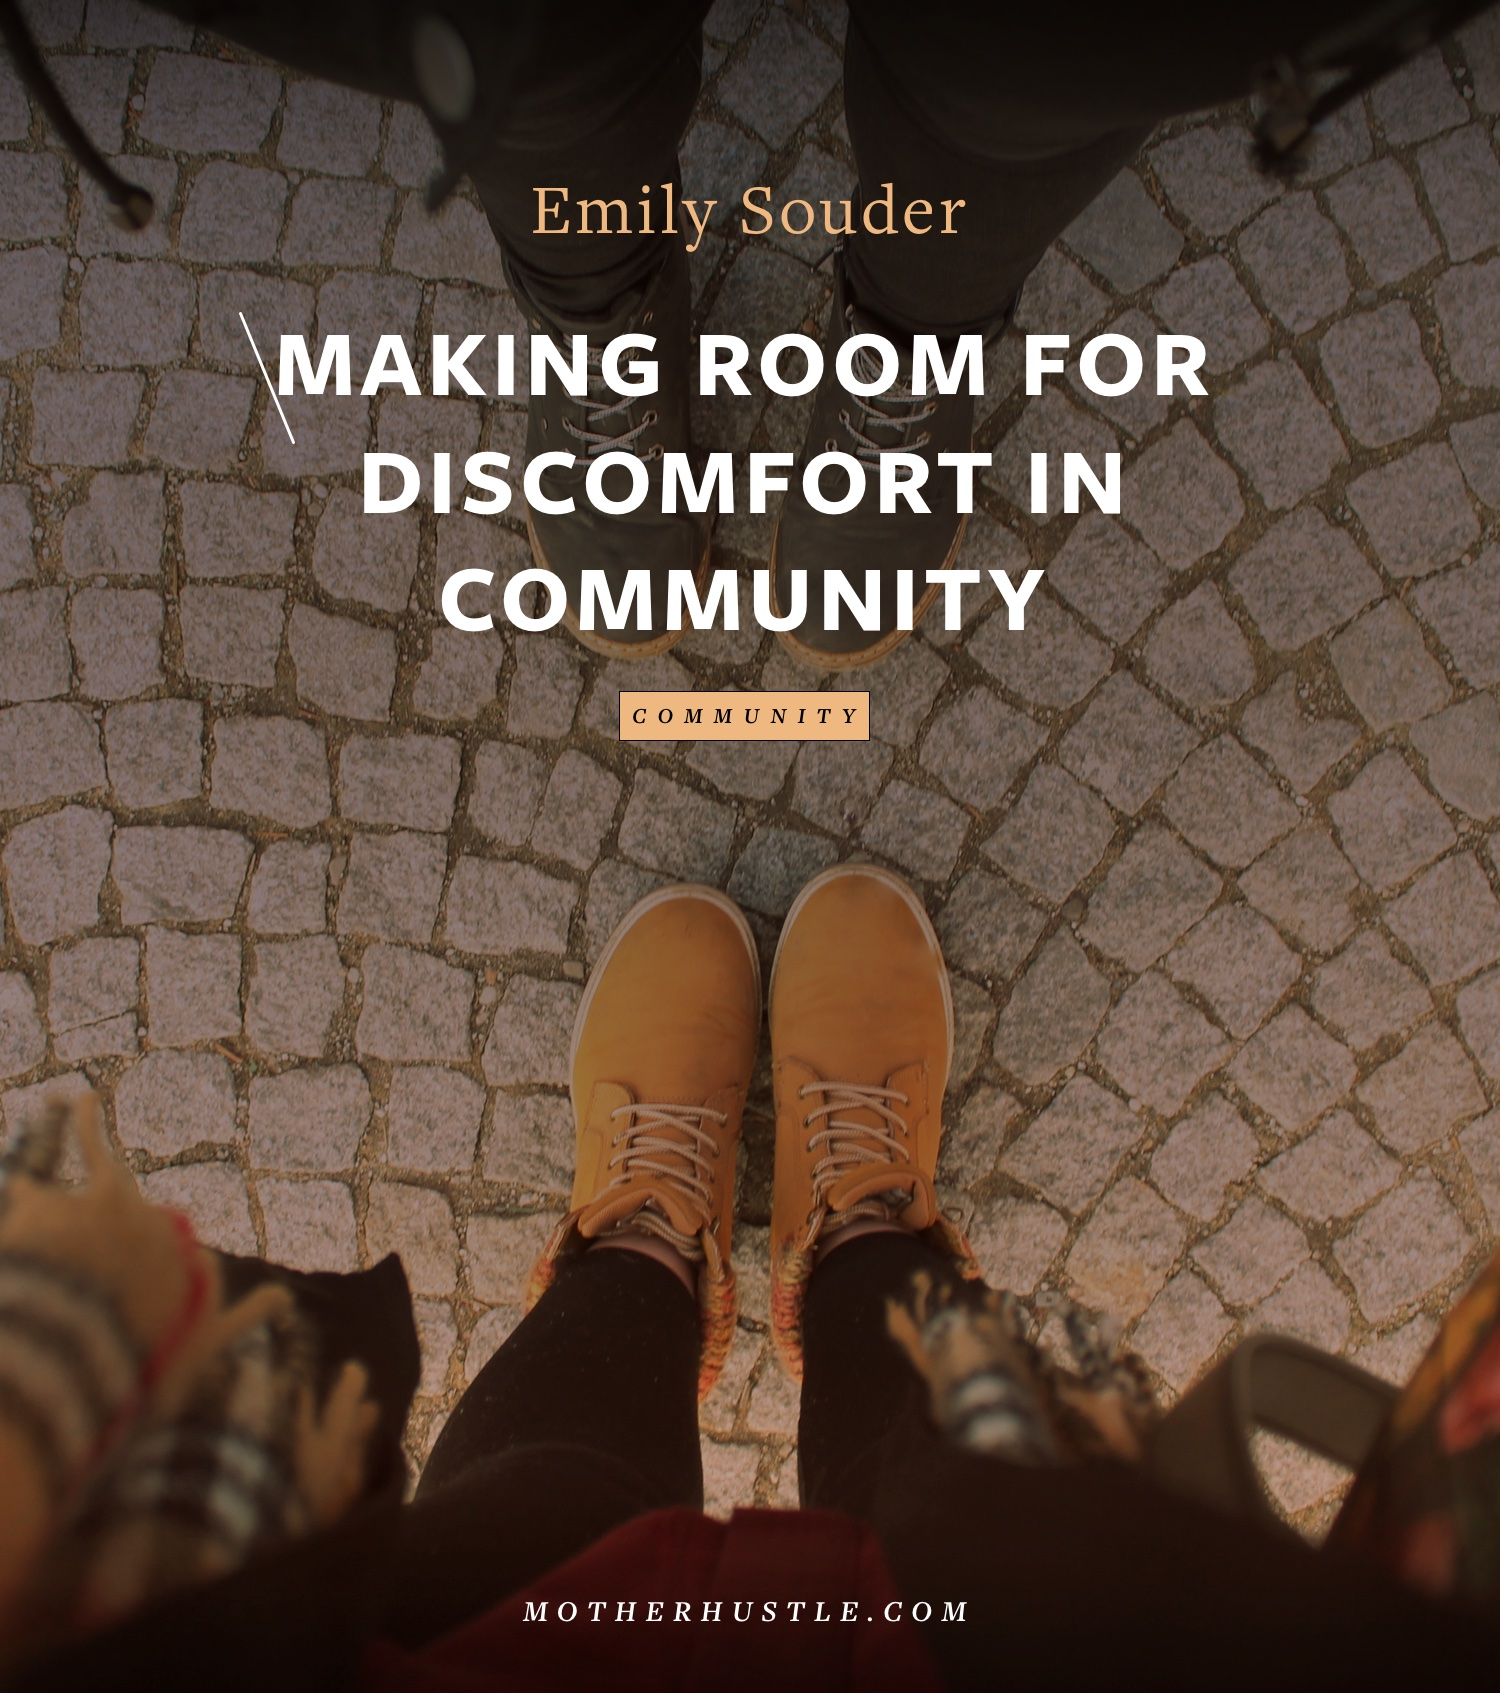 Making Room For Discomfort in Community - by Emily Souder for MotherHustle